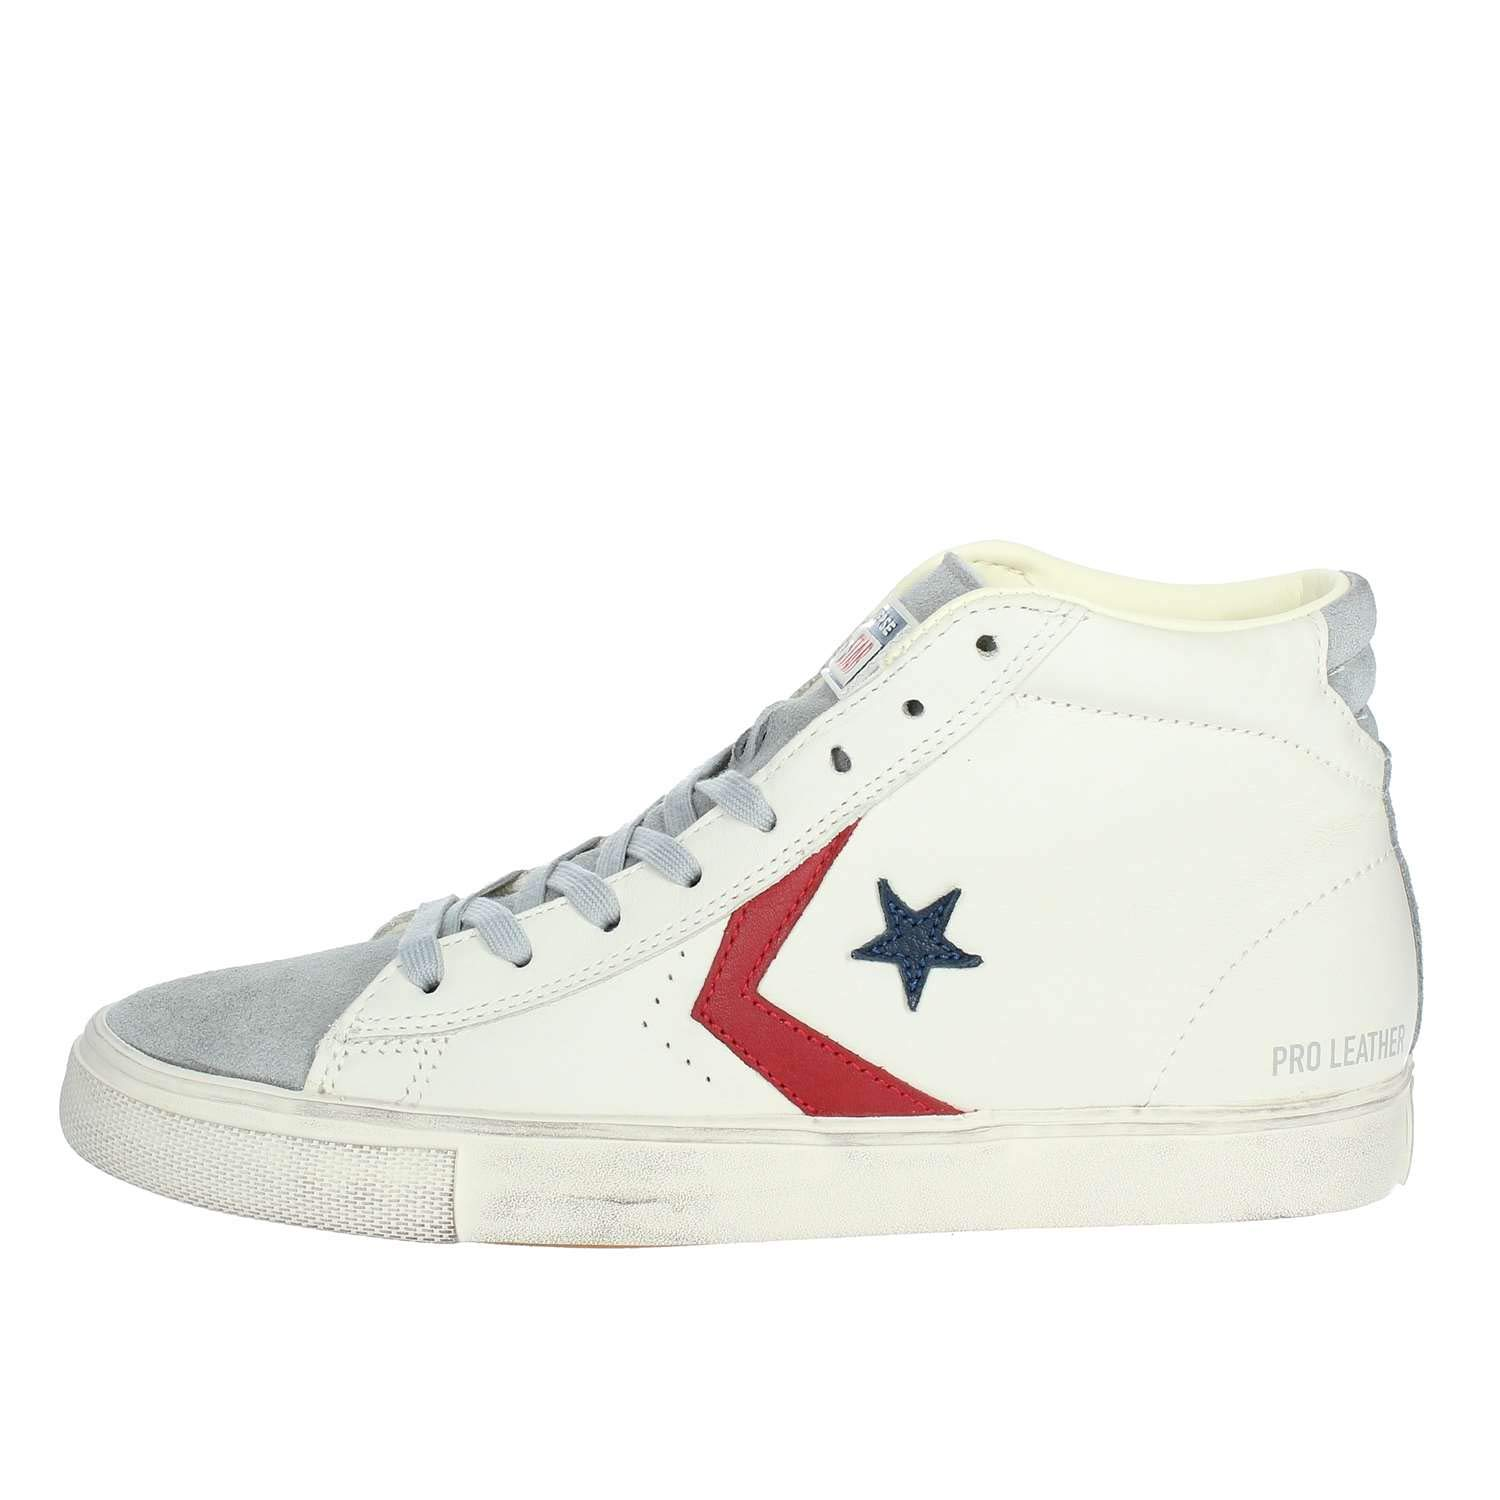 Converse Lifestyle Pro Leather Vulc Distressed Mid, Sneakers Sneakers Sneakers Basses Mixte Adulte 46 EU|Multicolore (Light Gray/Turtledove 036) b44c32